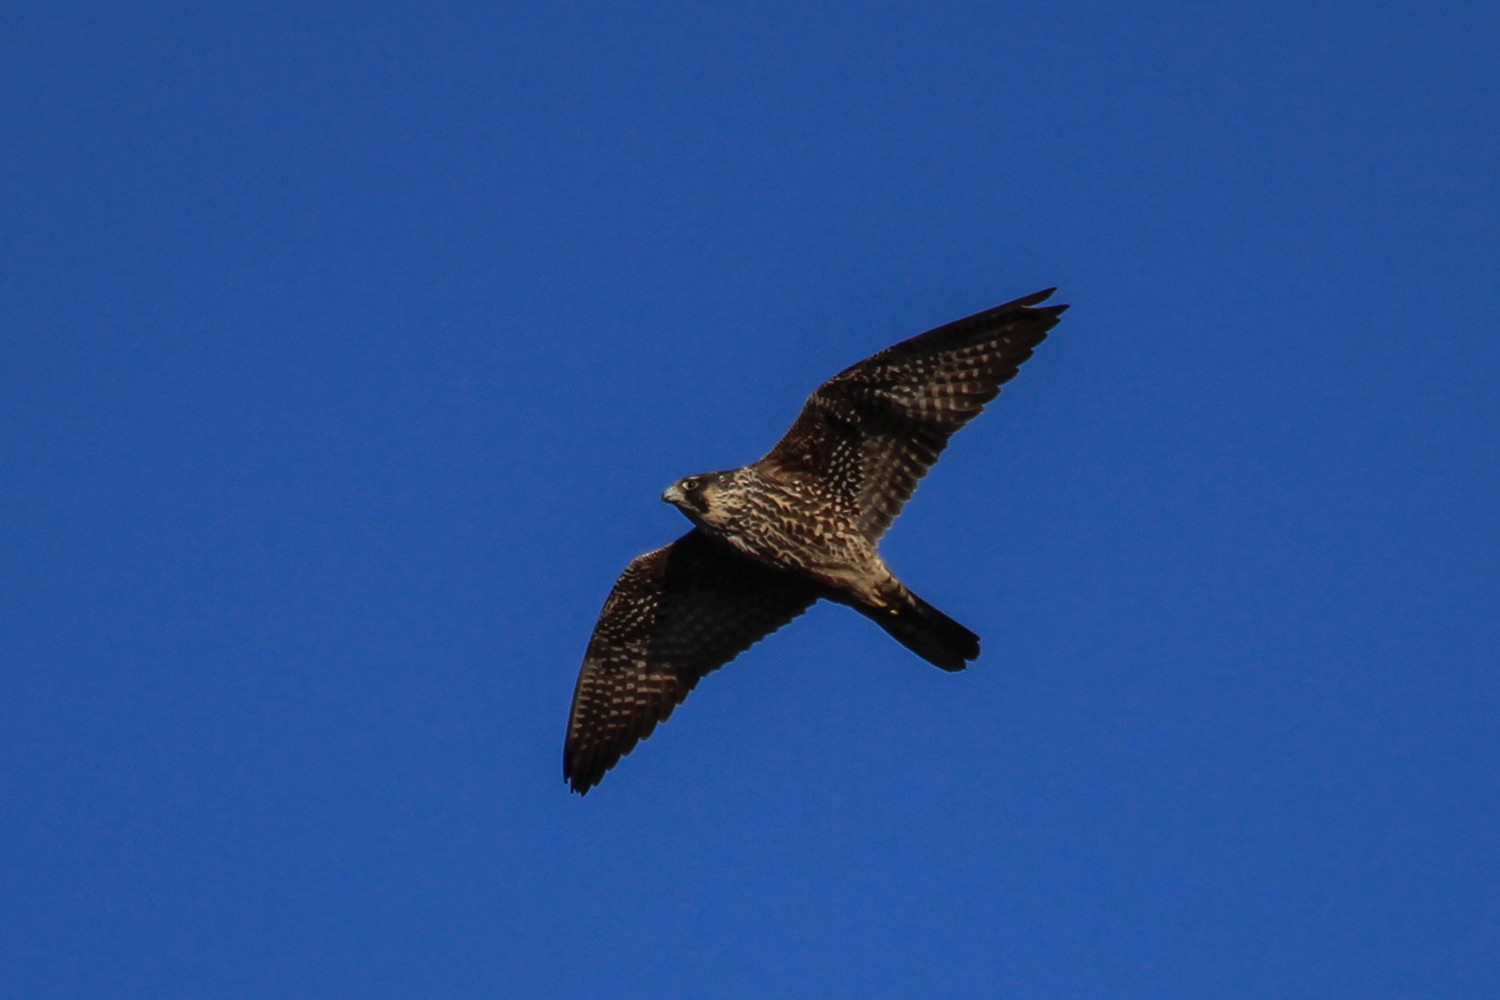 A subadult peregrine falcon in flight.